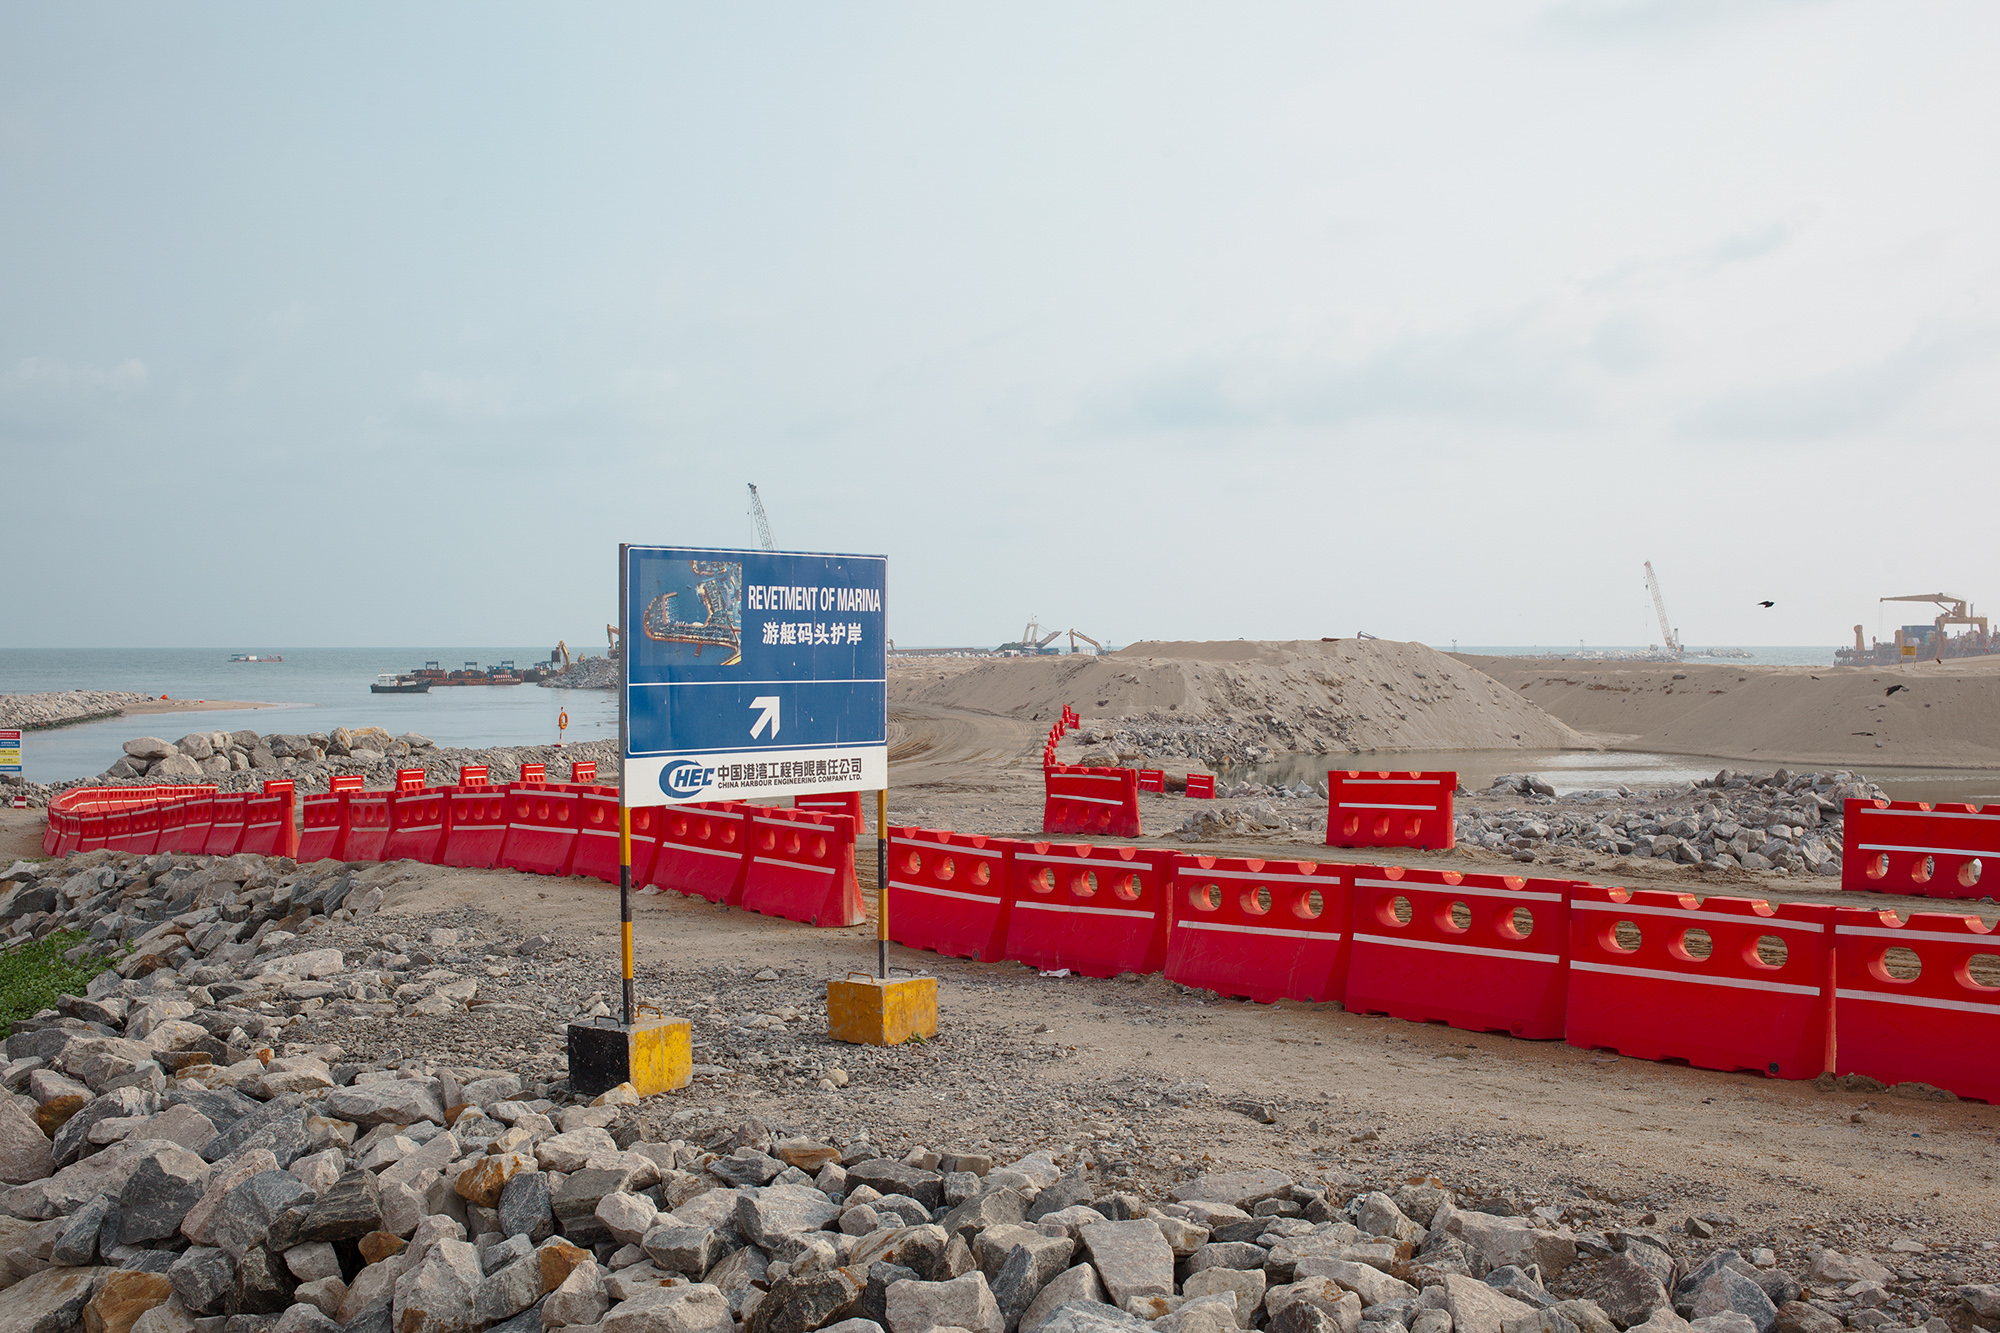 A China Harbour Engineering Company construction site, Colombo, Sri Lanka, 2017.